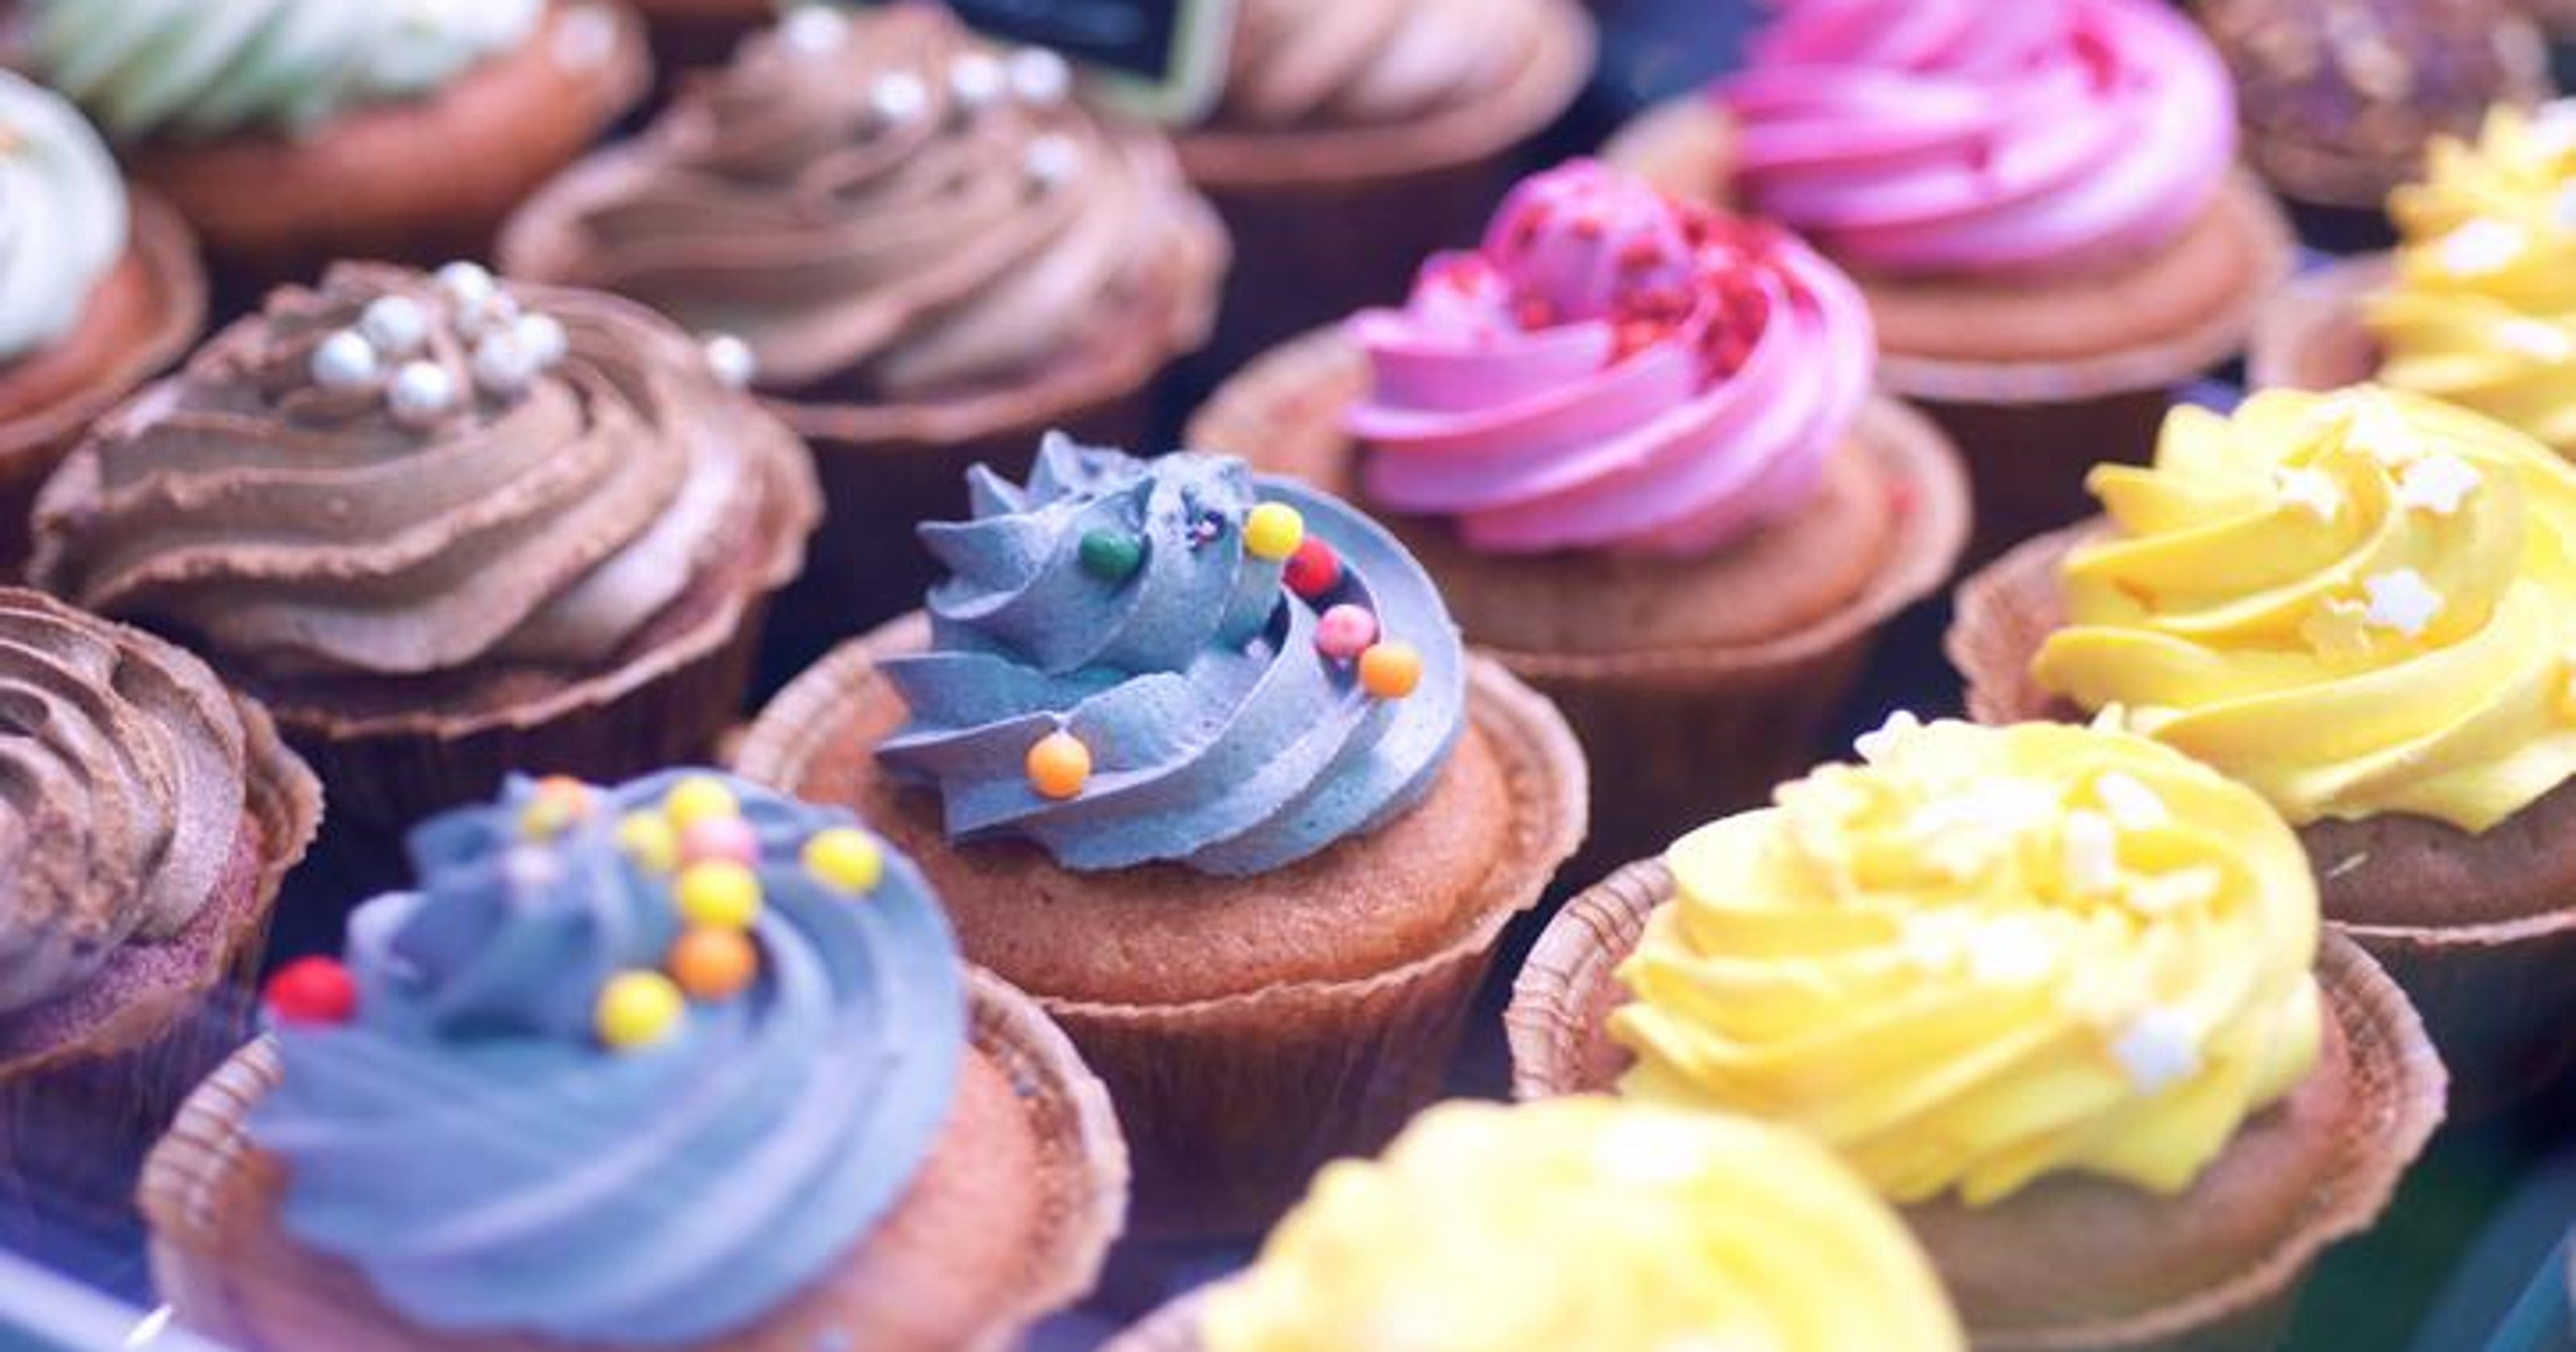 Take Five Where To Find The Upstates Best Cupcakes